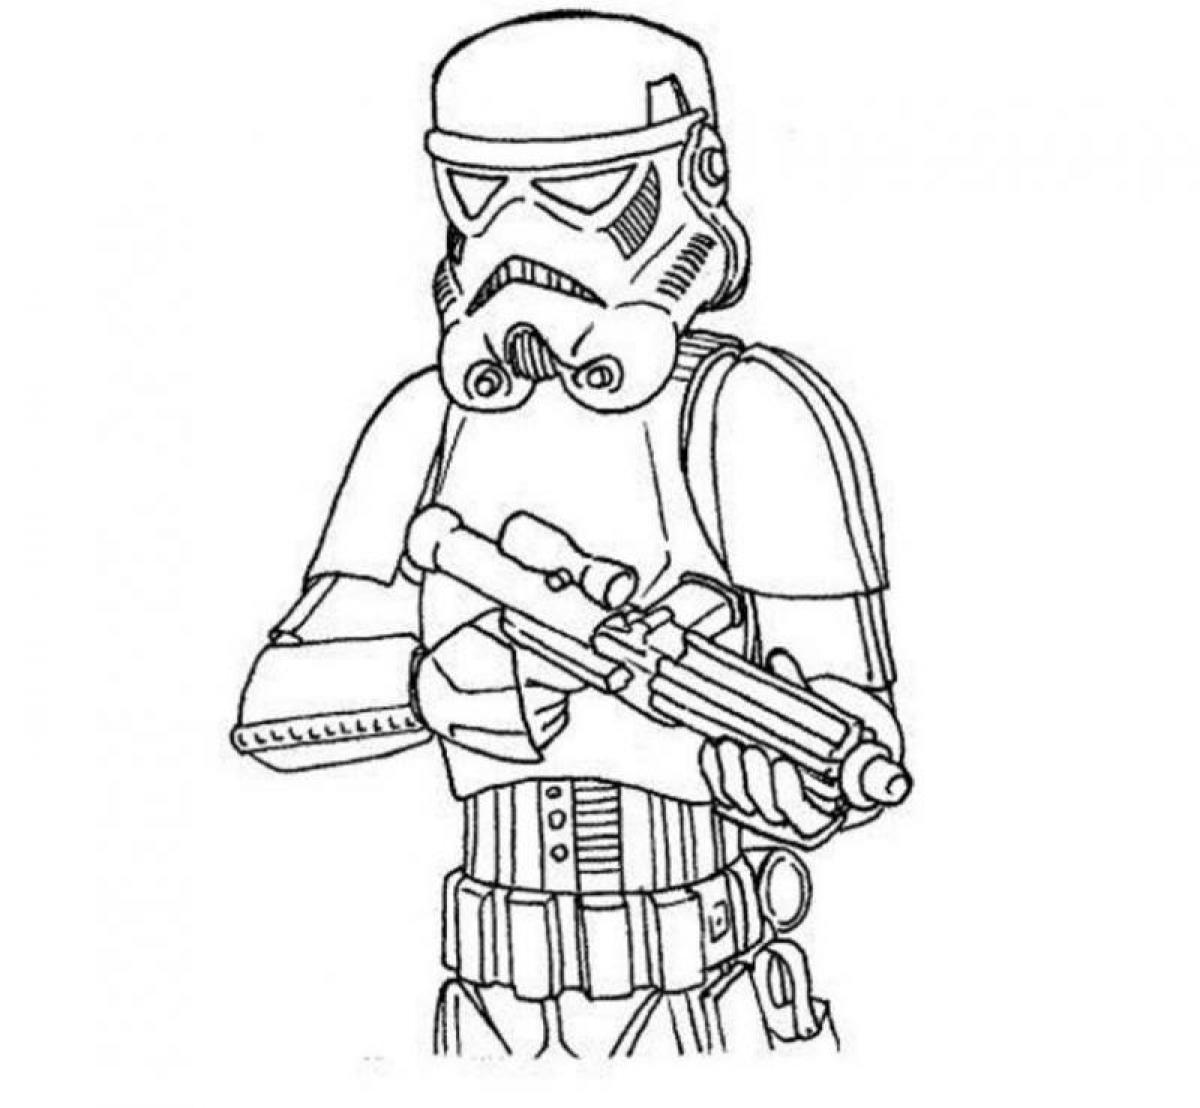 star wars stormtrooper coloring page Coloring Kids